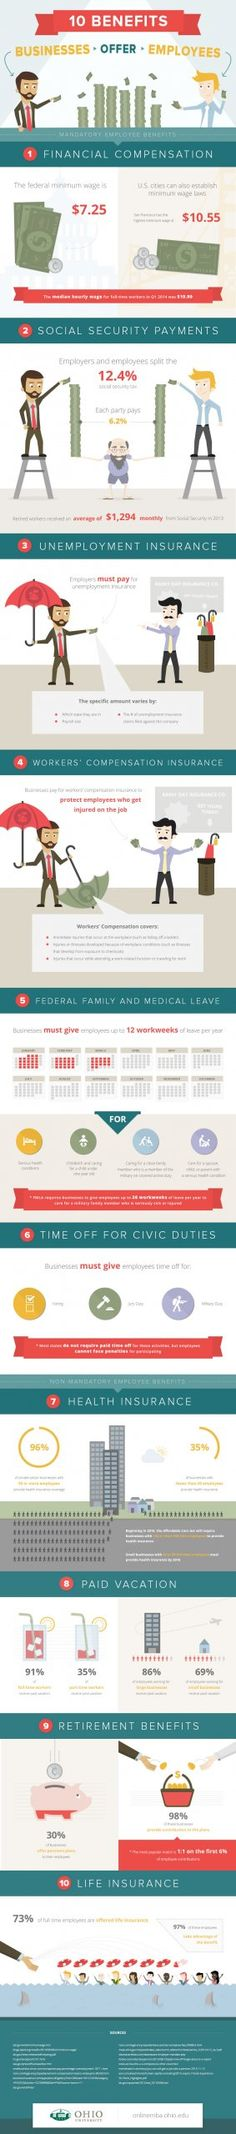 Benefits employers in the USA have to offer employees #infographic